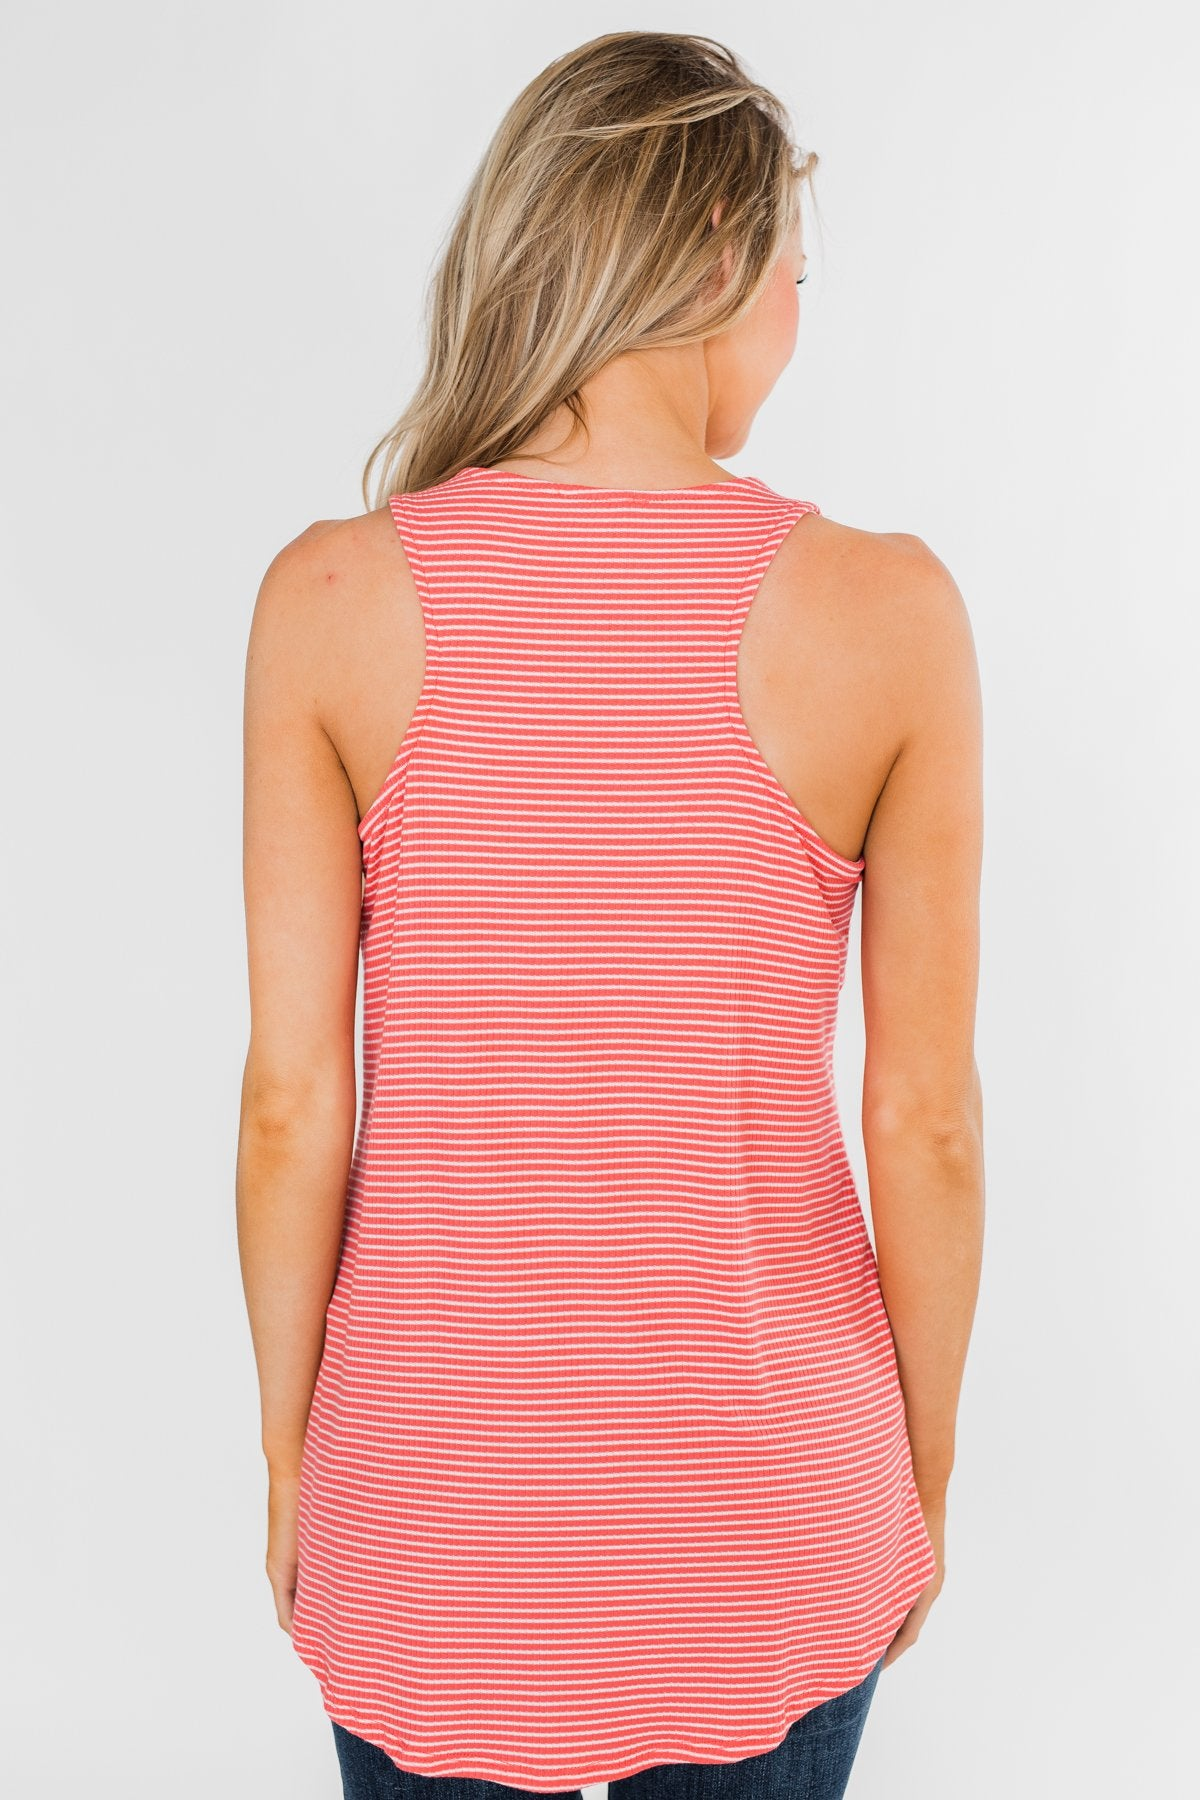 Mirage Criss Cross Tank Top- Pink & White